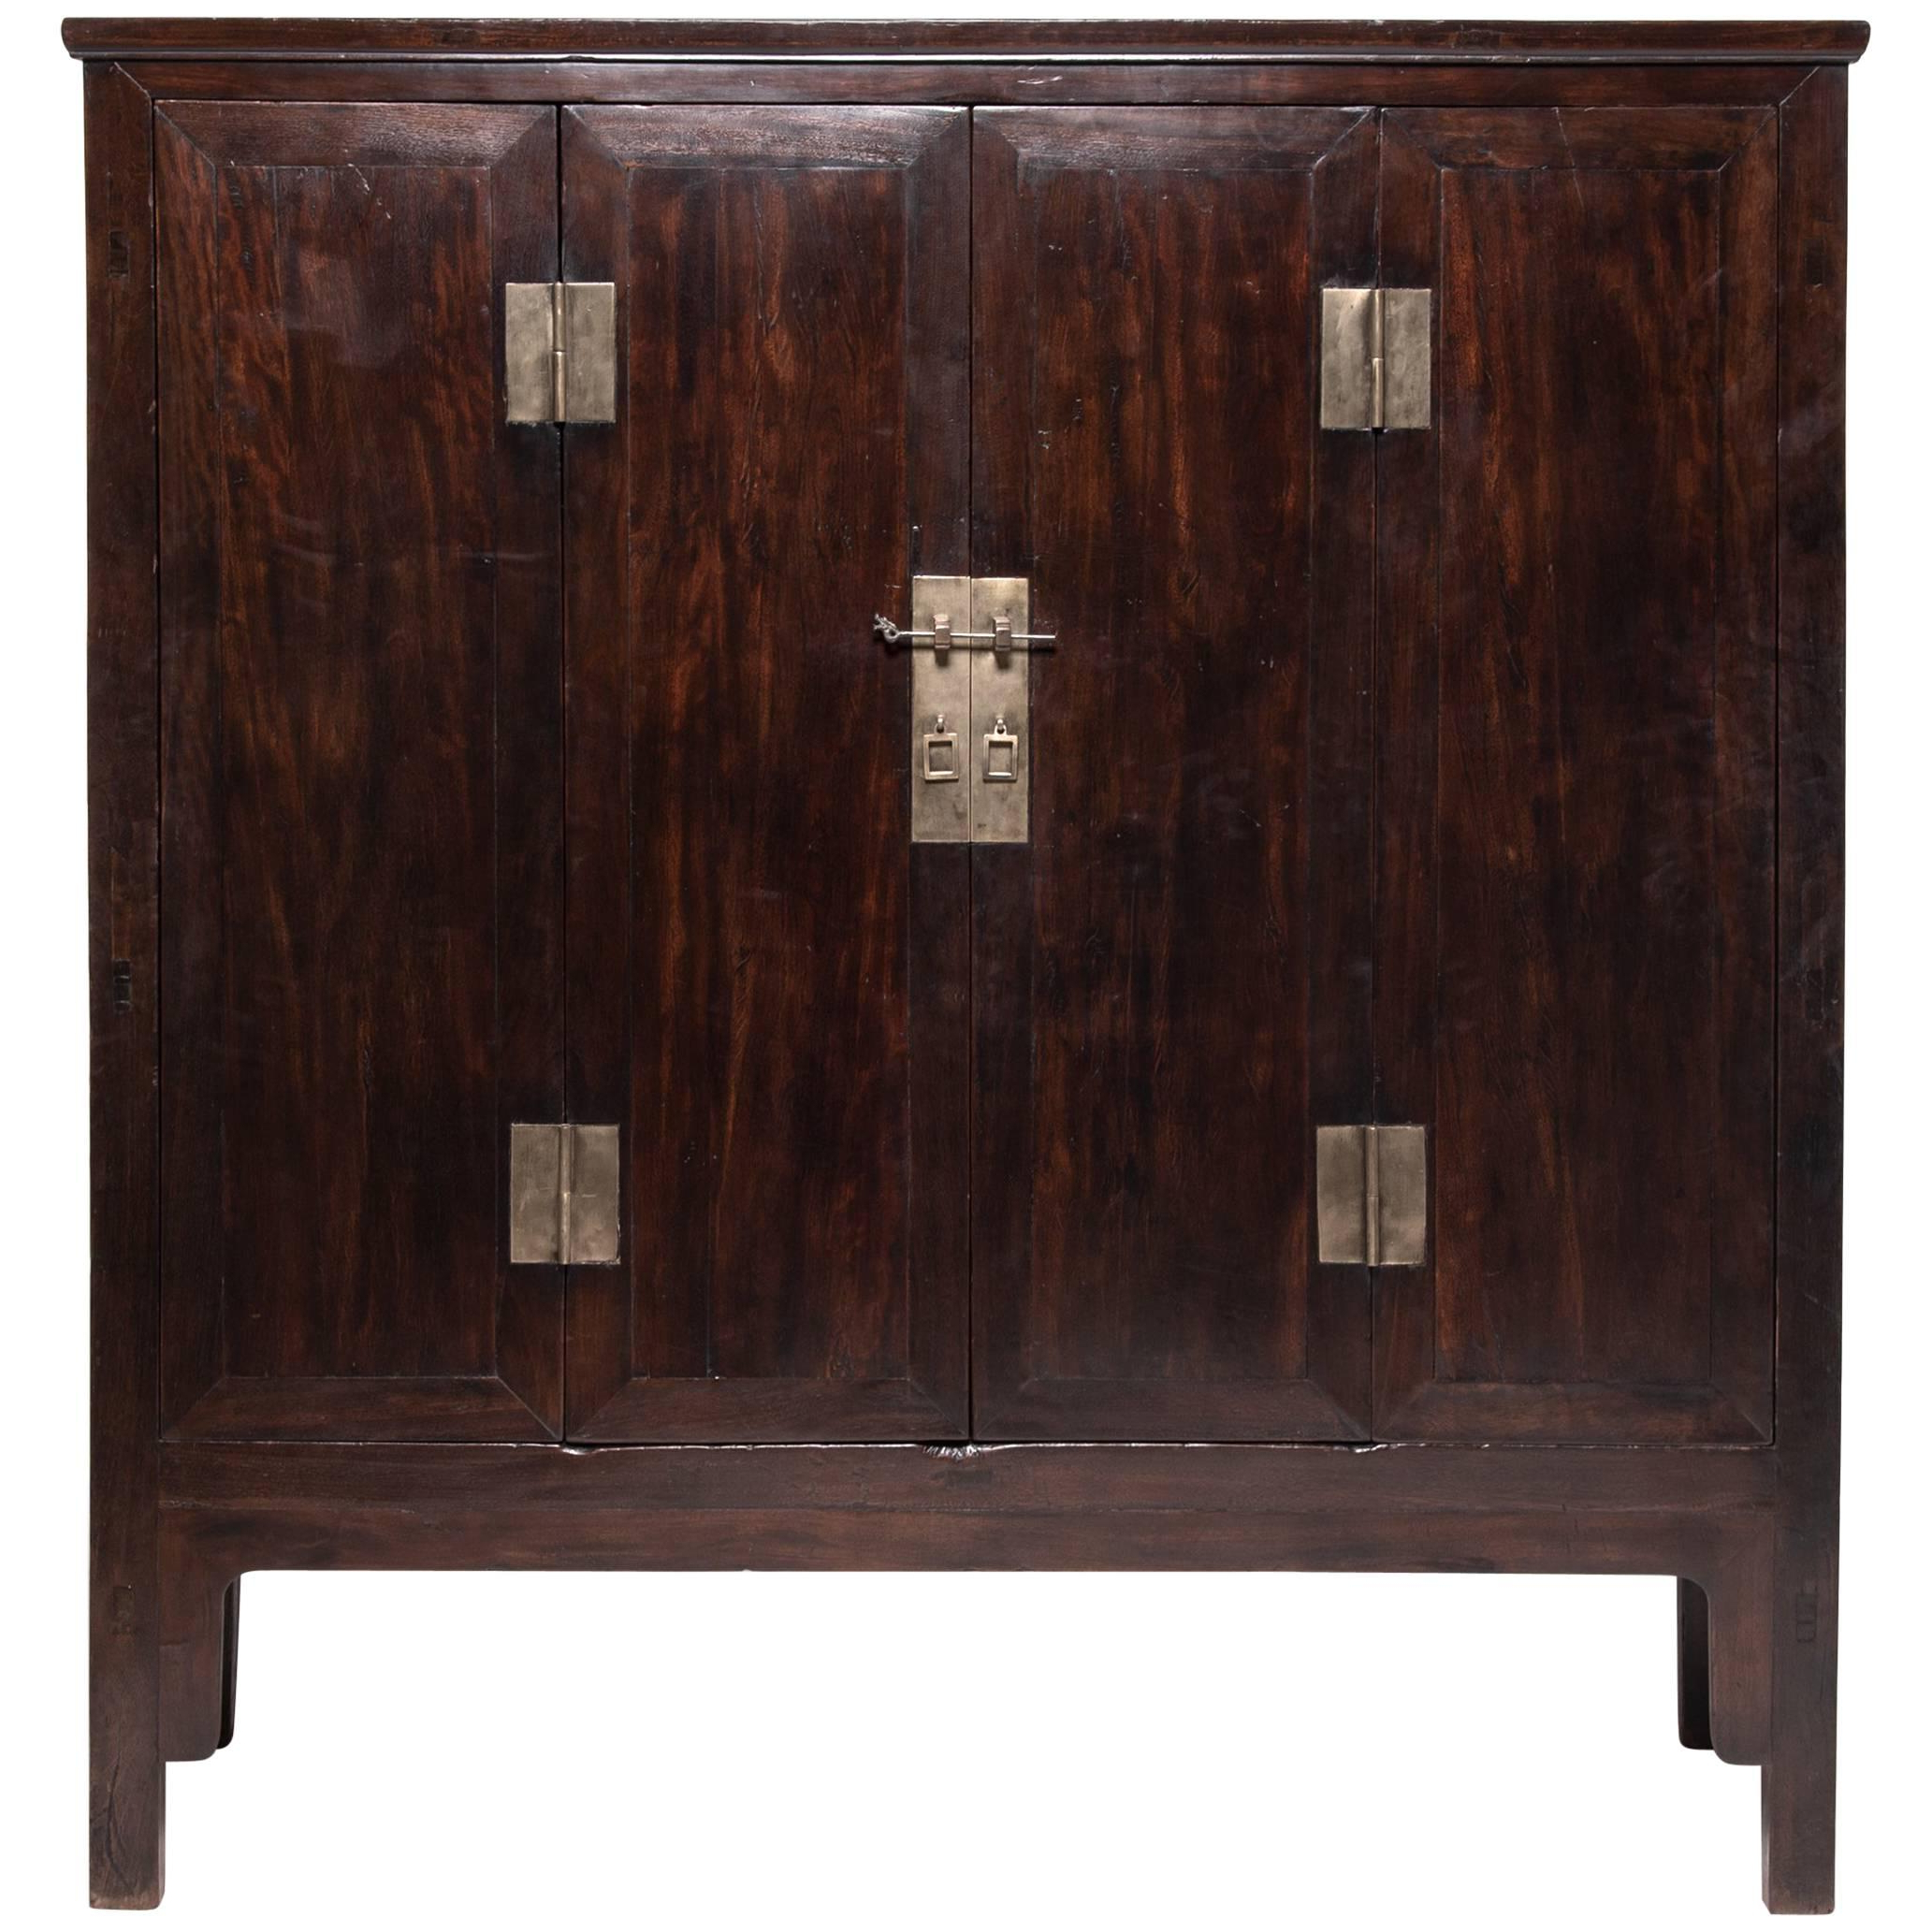 Ironwood 4 Door Sideboards Throughout Most Popular 19th Century Chinese Fine Ironwood Cabinet For Sale At 1stdibs (View 6 of 20)